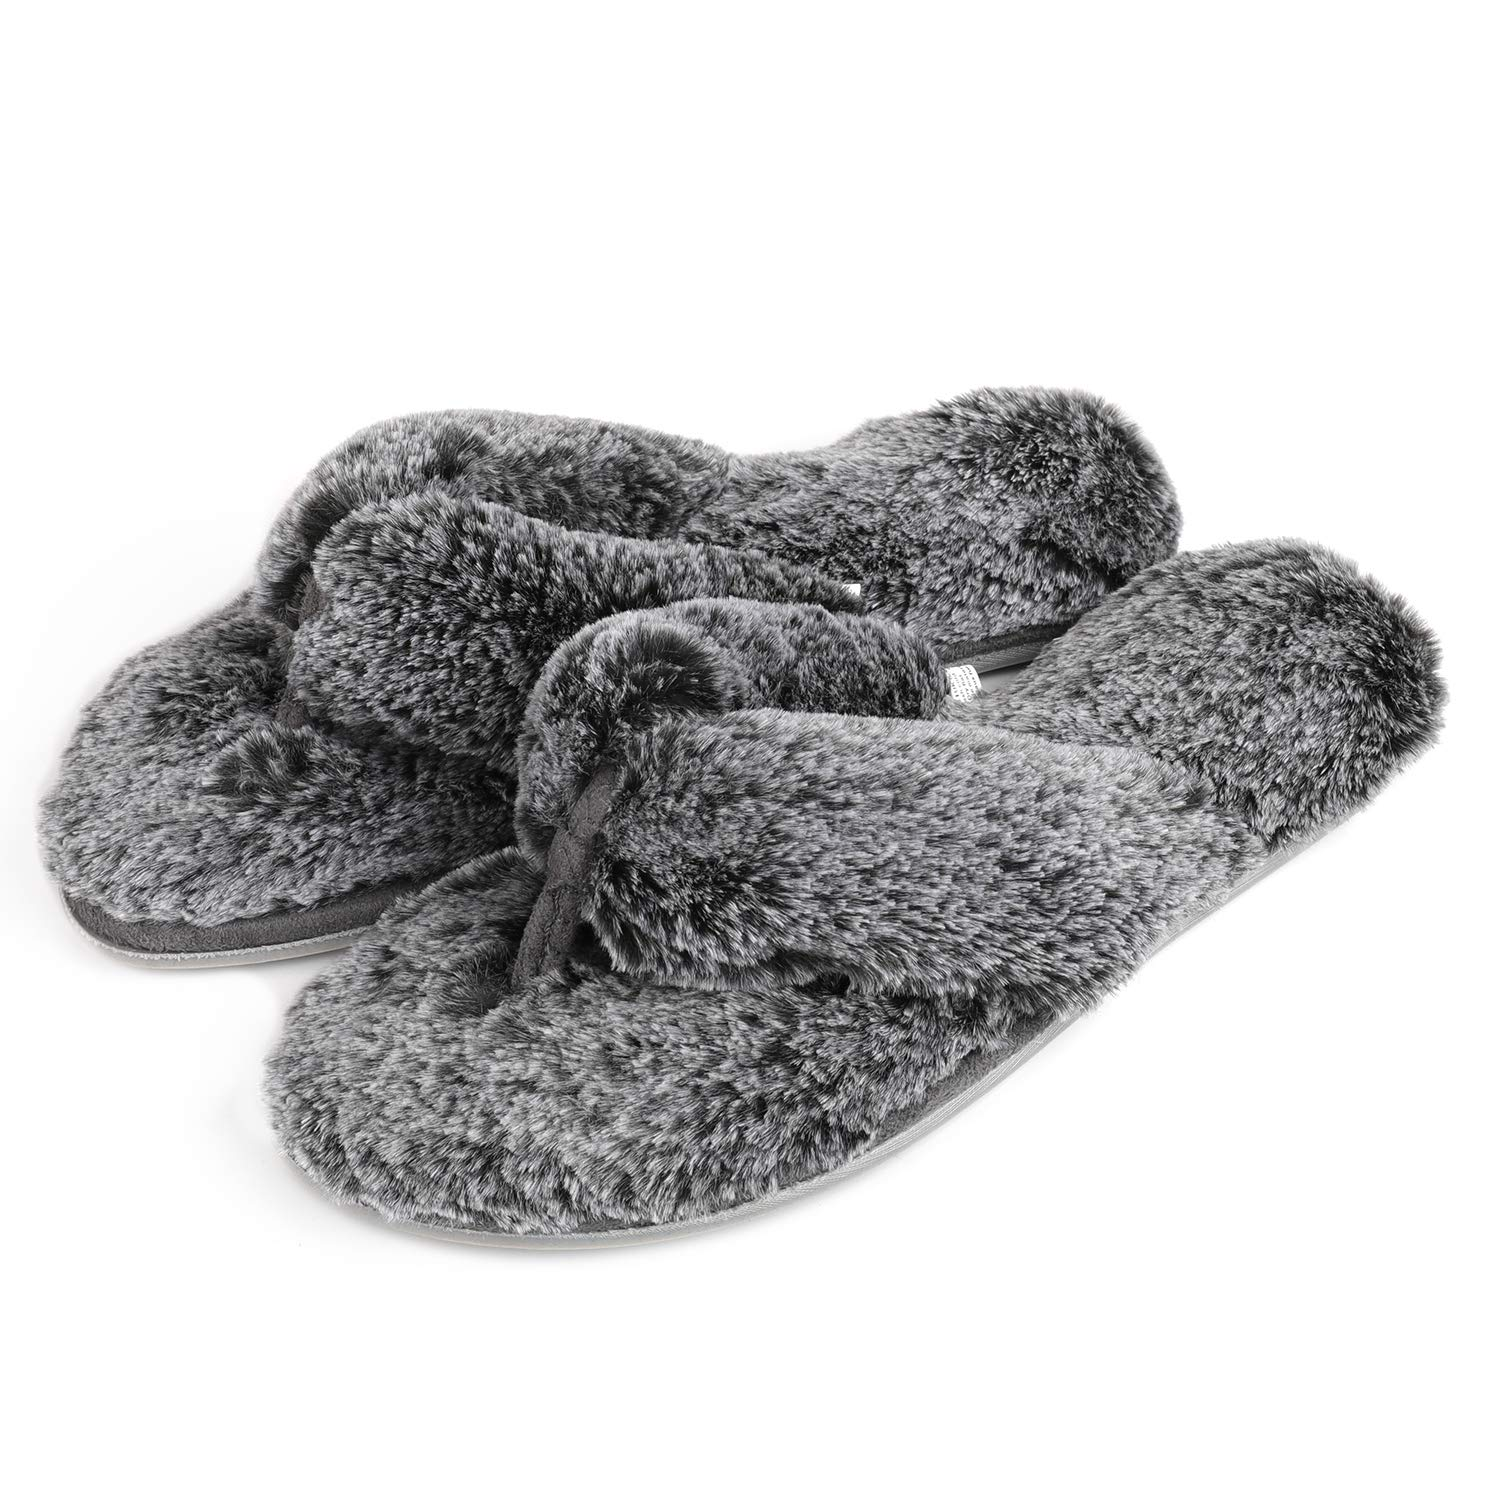 Image of Comfortable Fuzzy Thong Slippers for Women